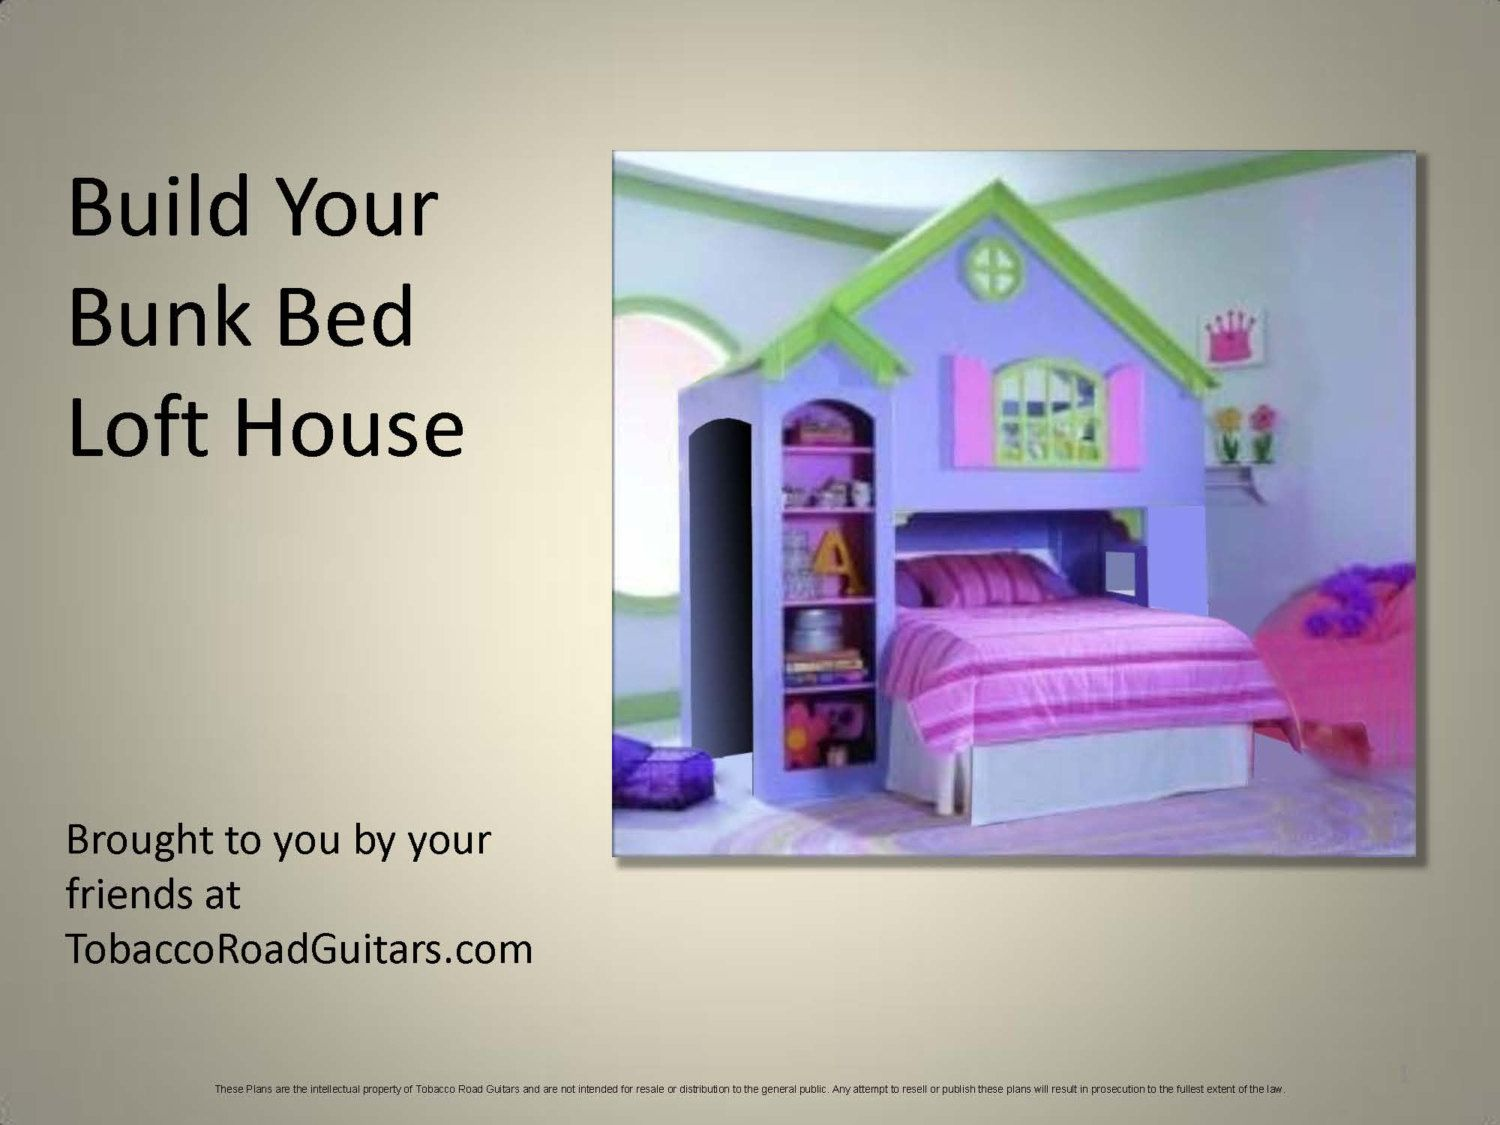 Two twin loft bed   Bunk Bed Loft House Woodworking Plans Instructions Your kids